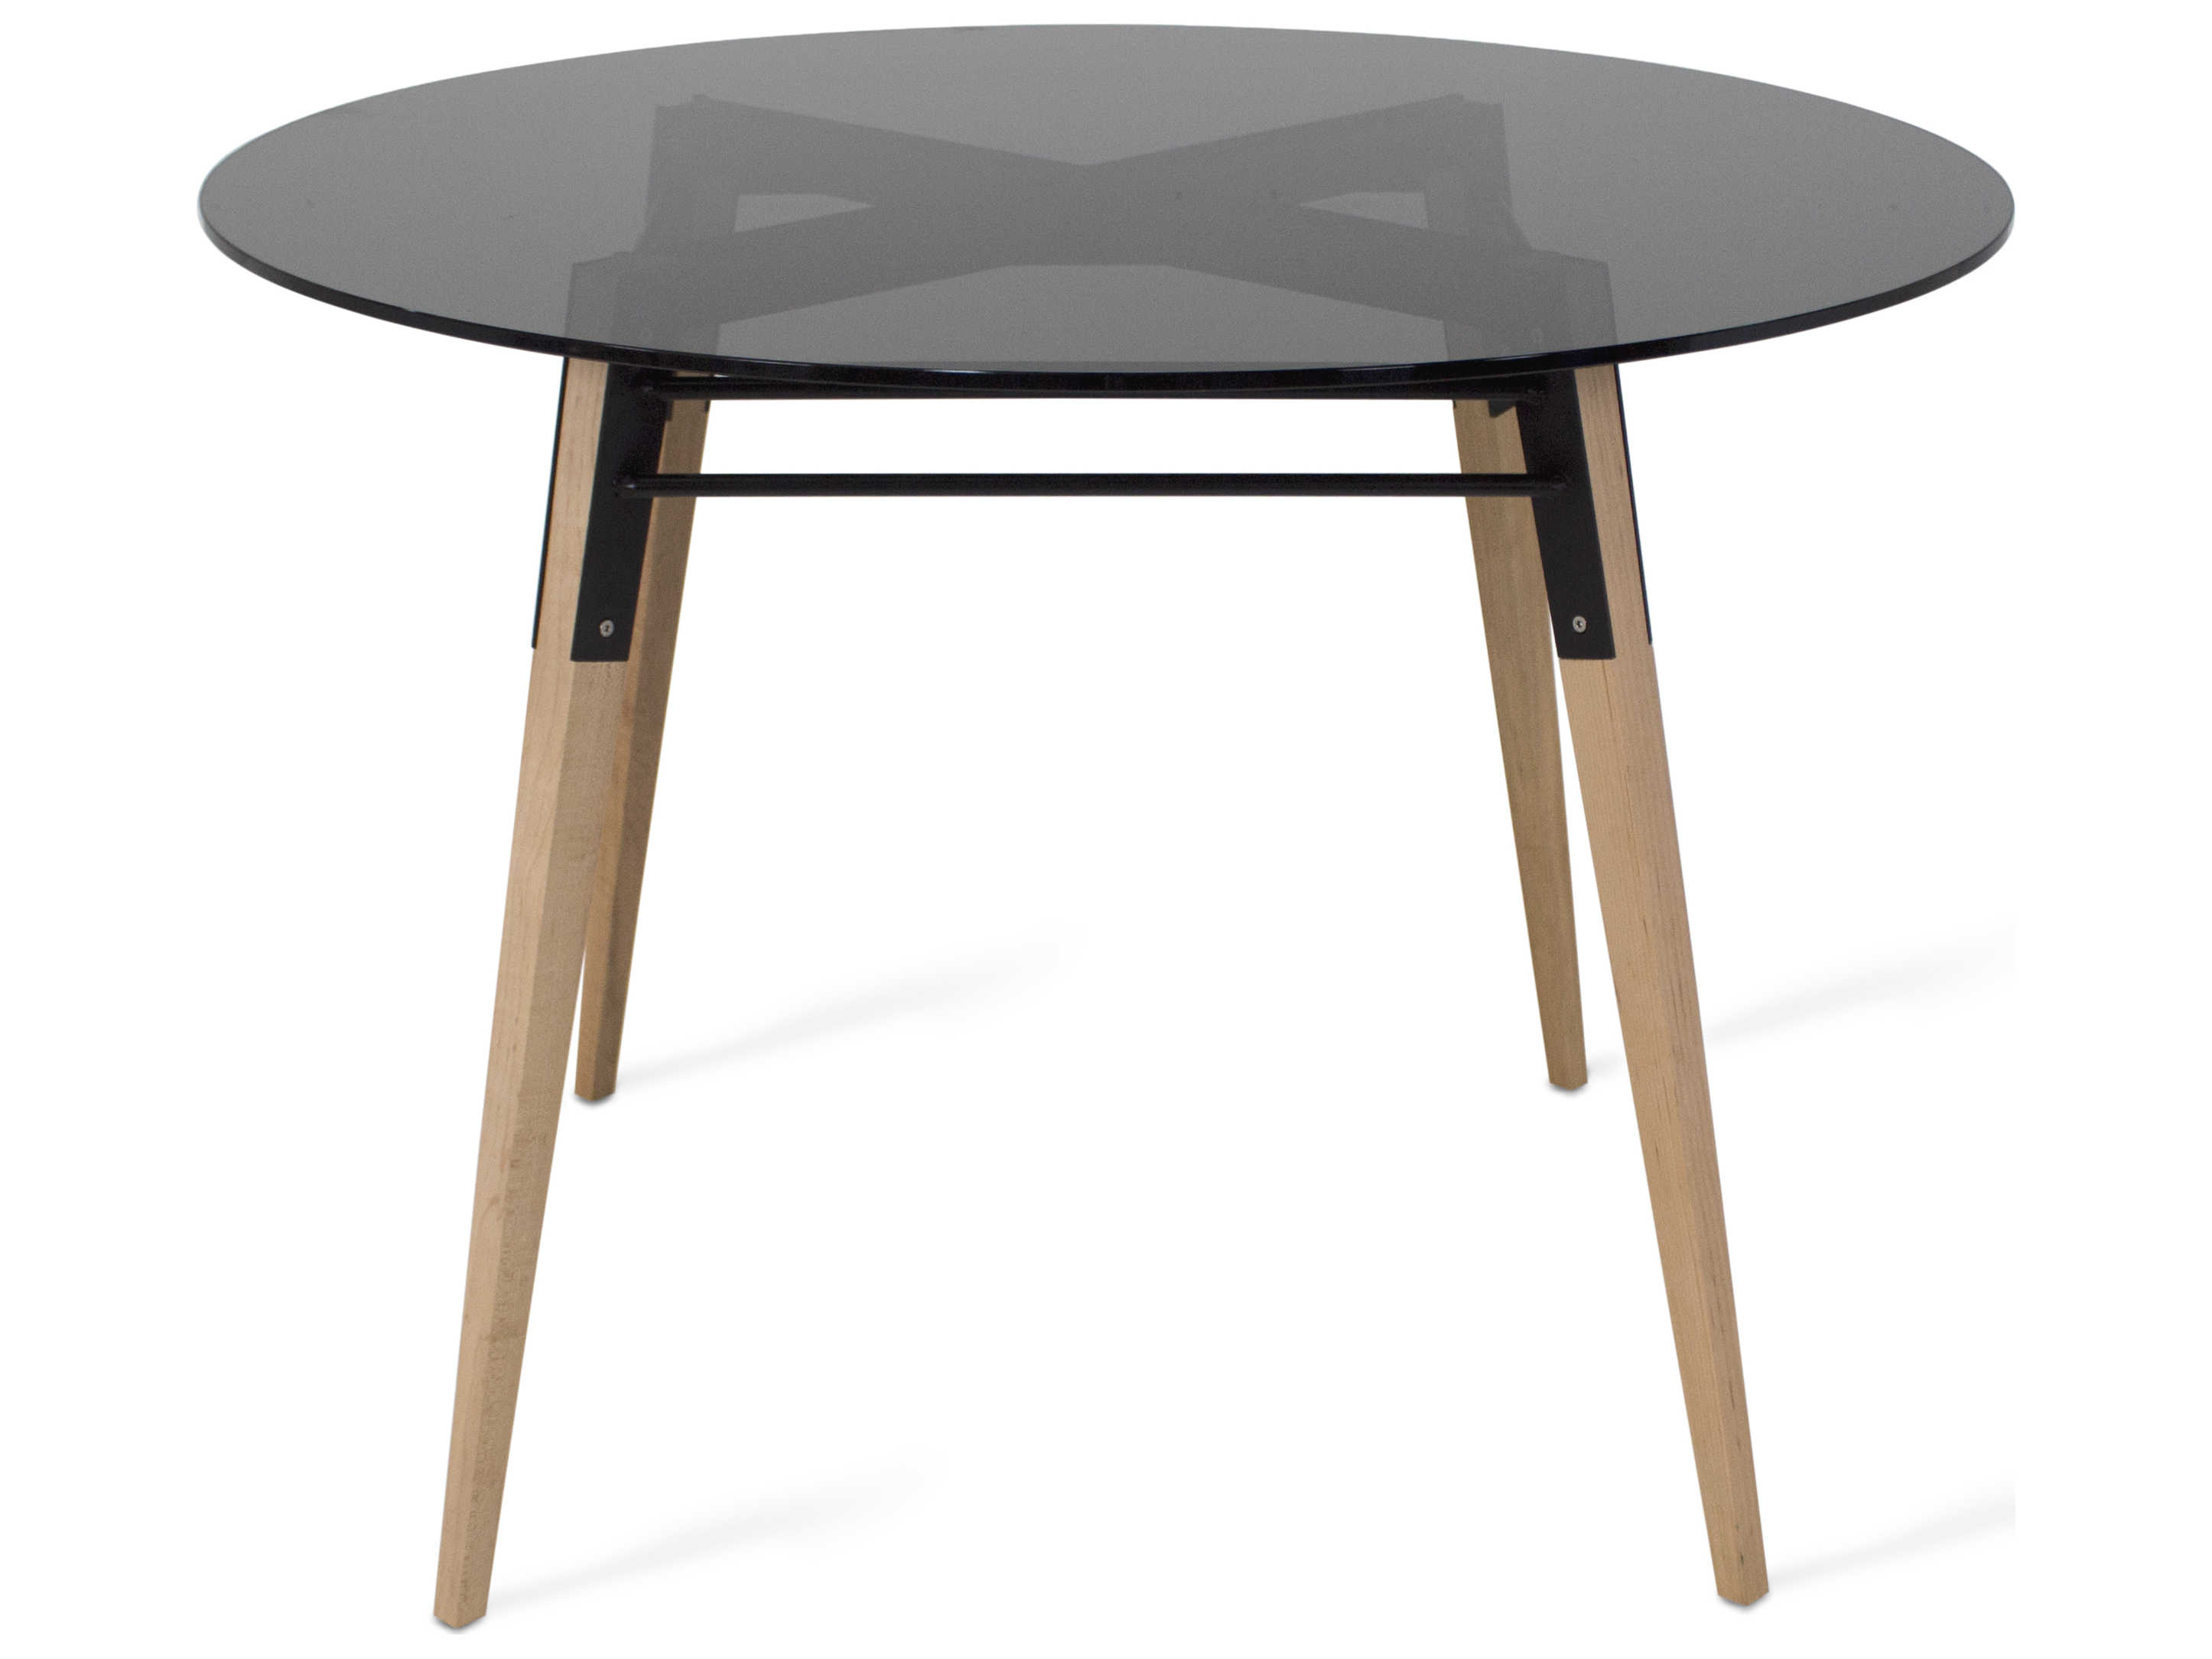 Tronk Design Ross Black Maple 42 Wide Round Dining Table Trorosdinmplblsmk